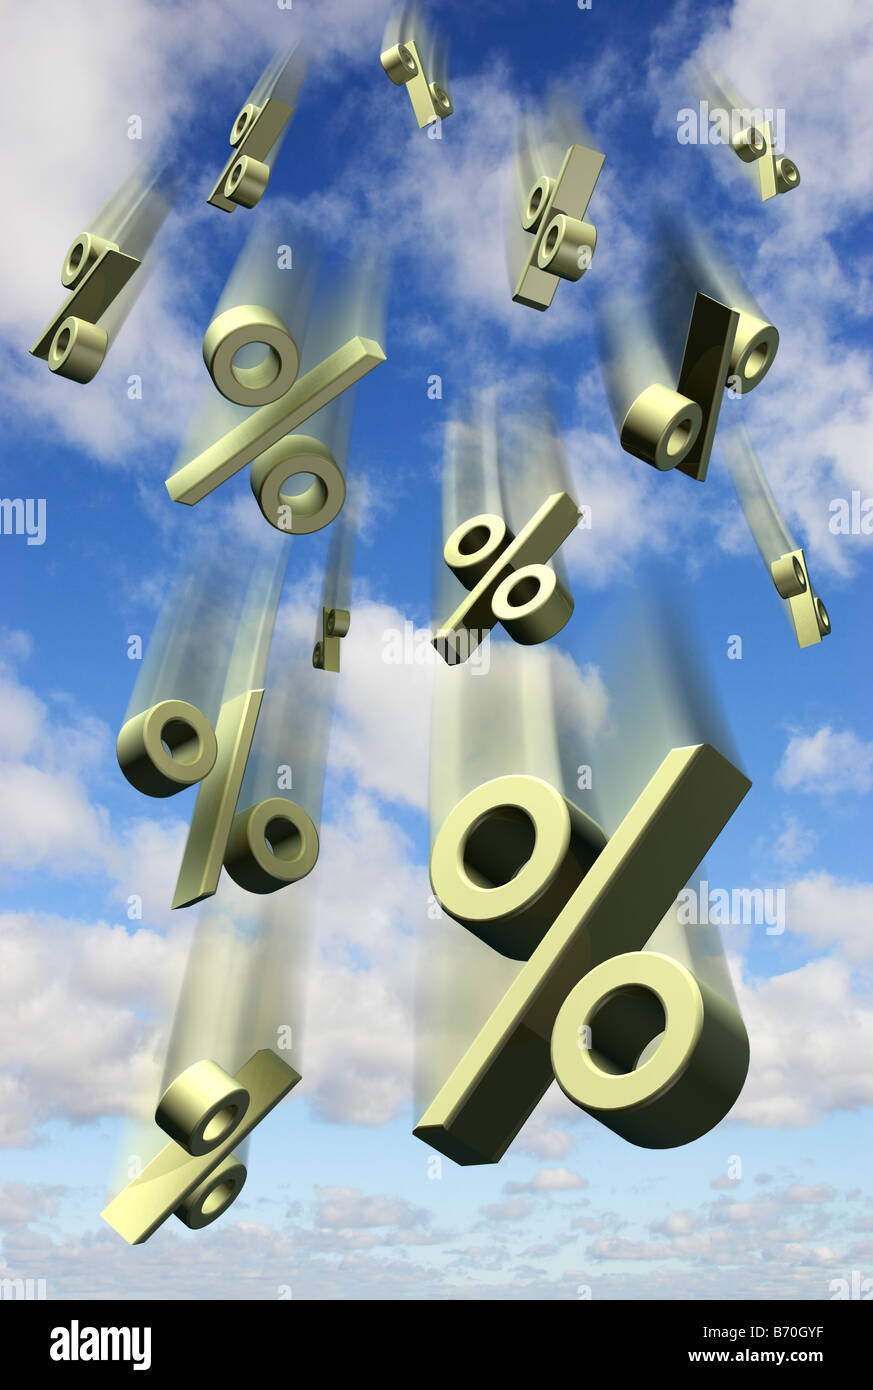 Interest percentage rates symbols falling against a blue sky - digital composite - Stock Image